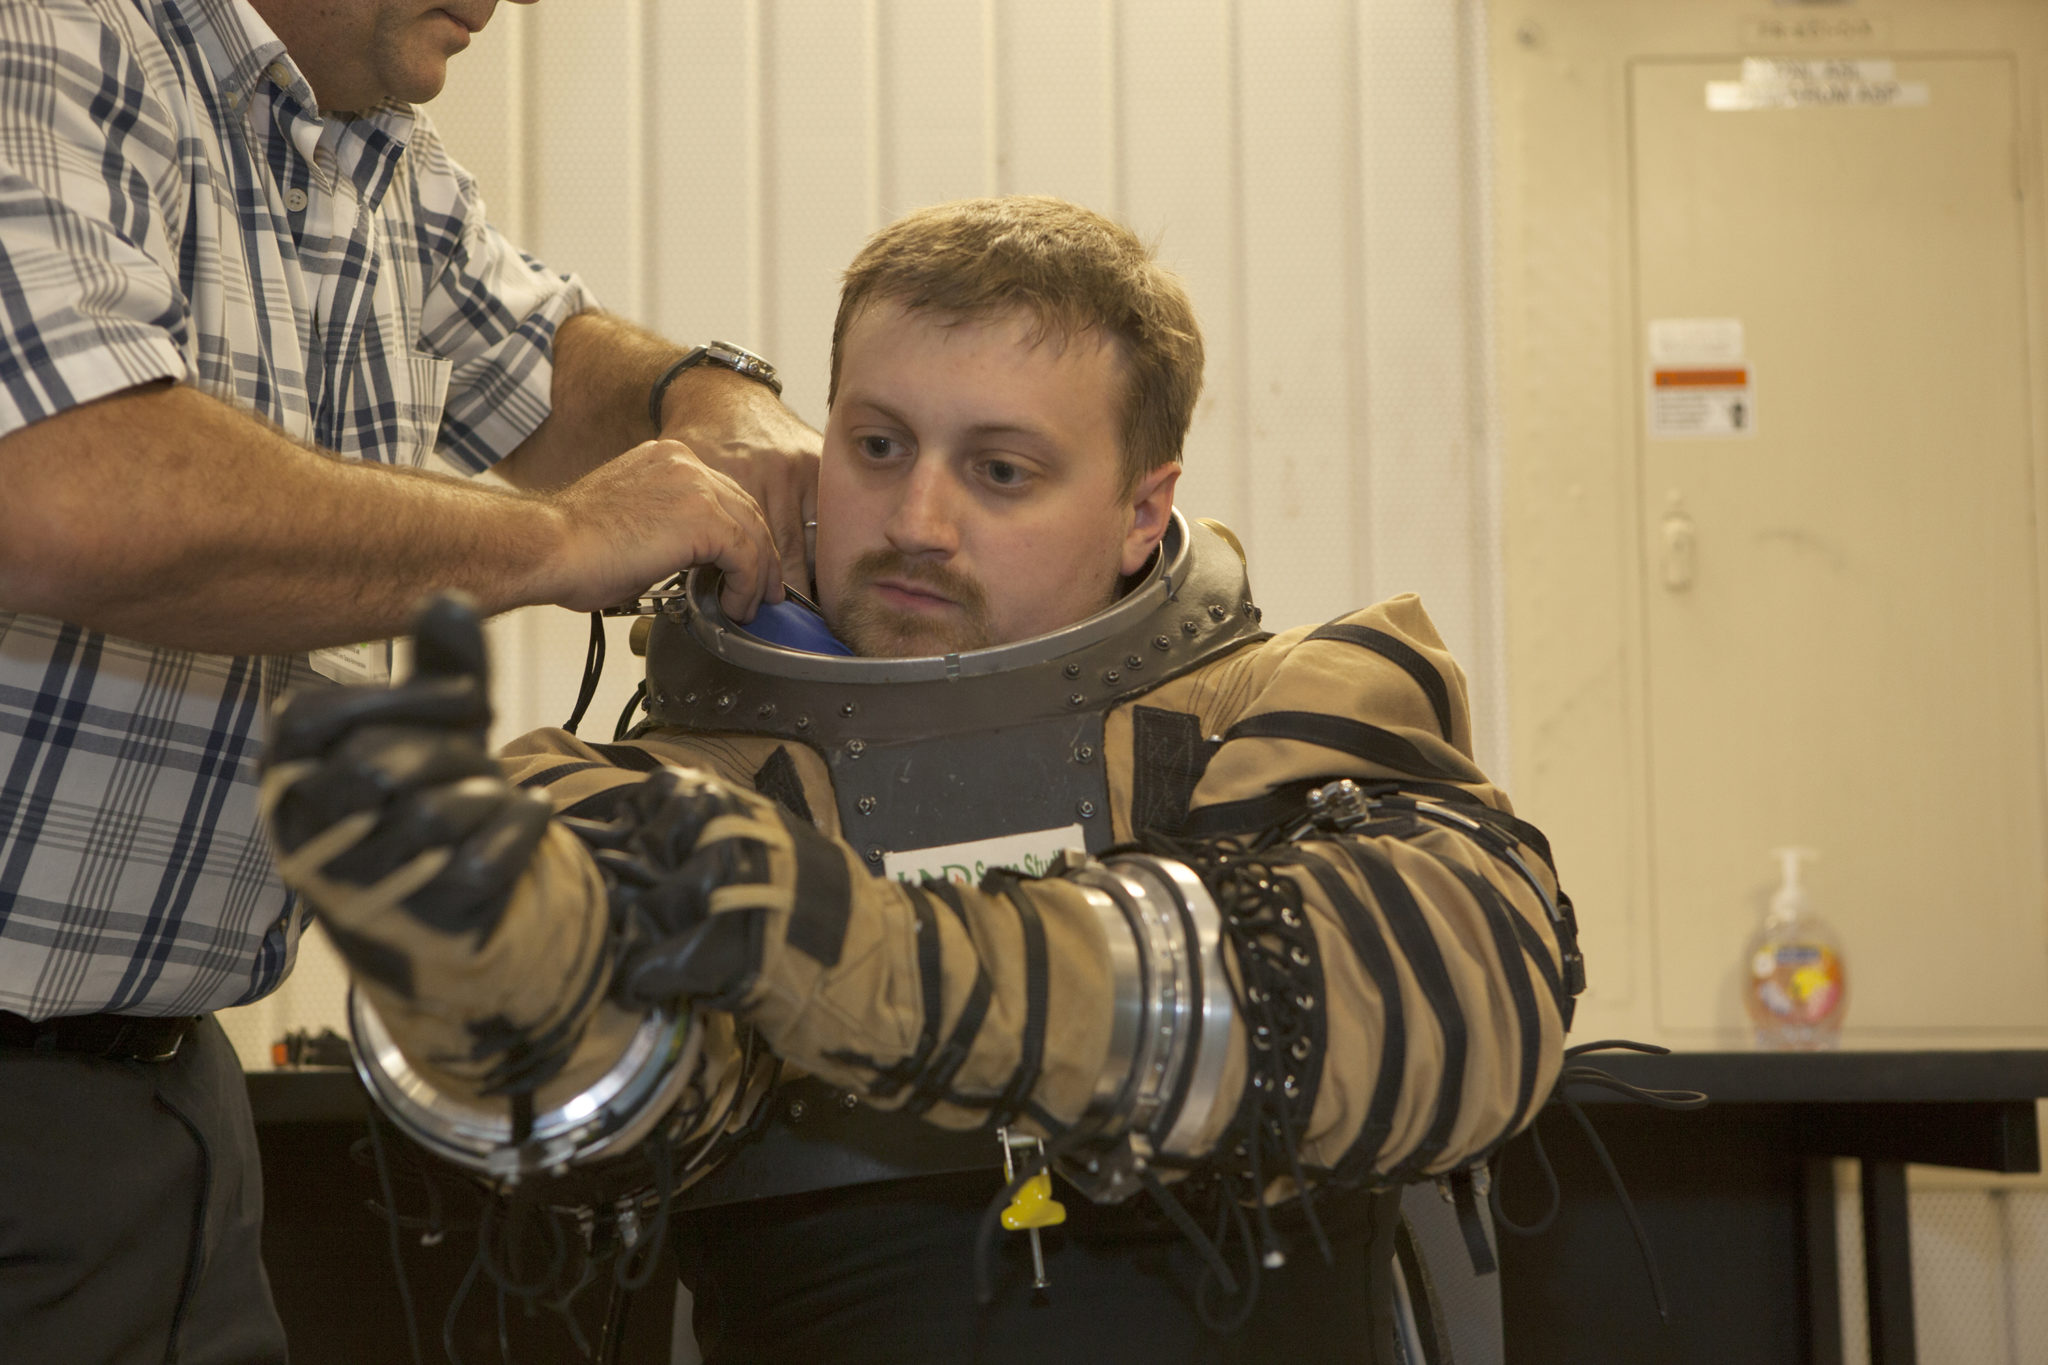 Astronauts Need New Spacesuits For Future Moon and Mars ...